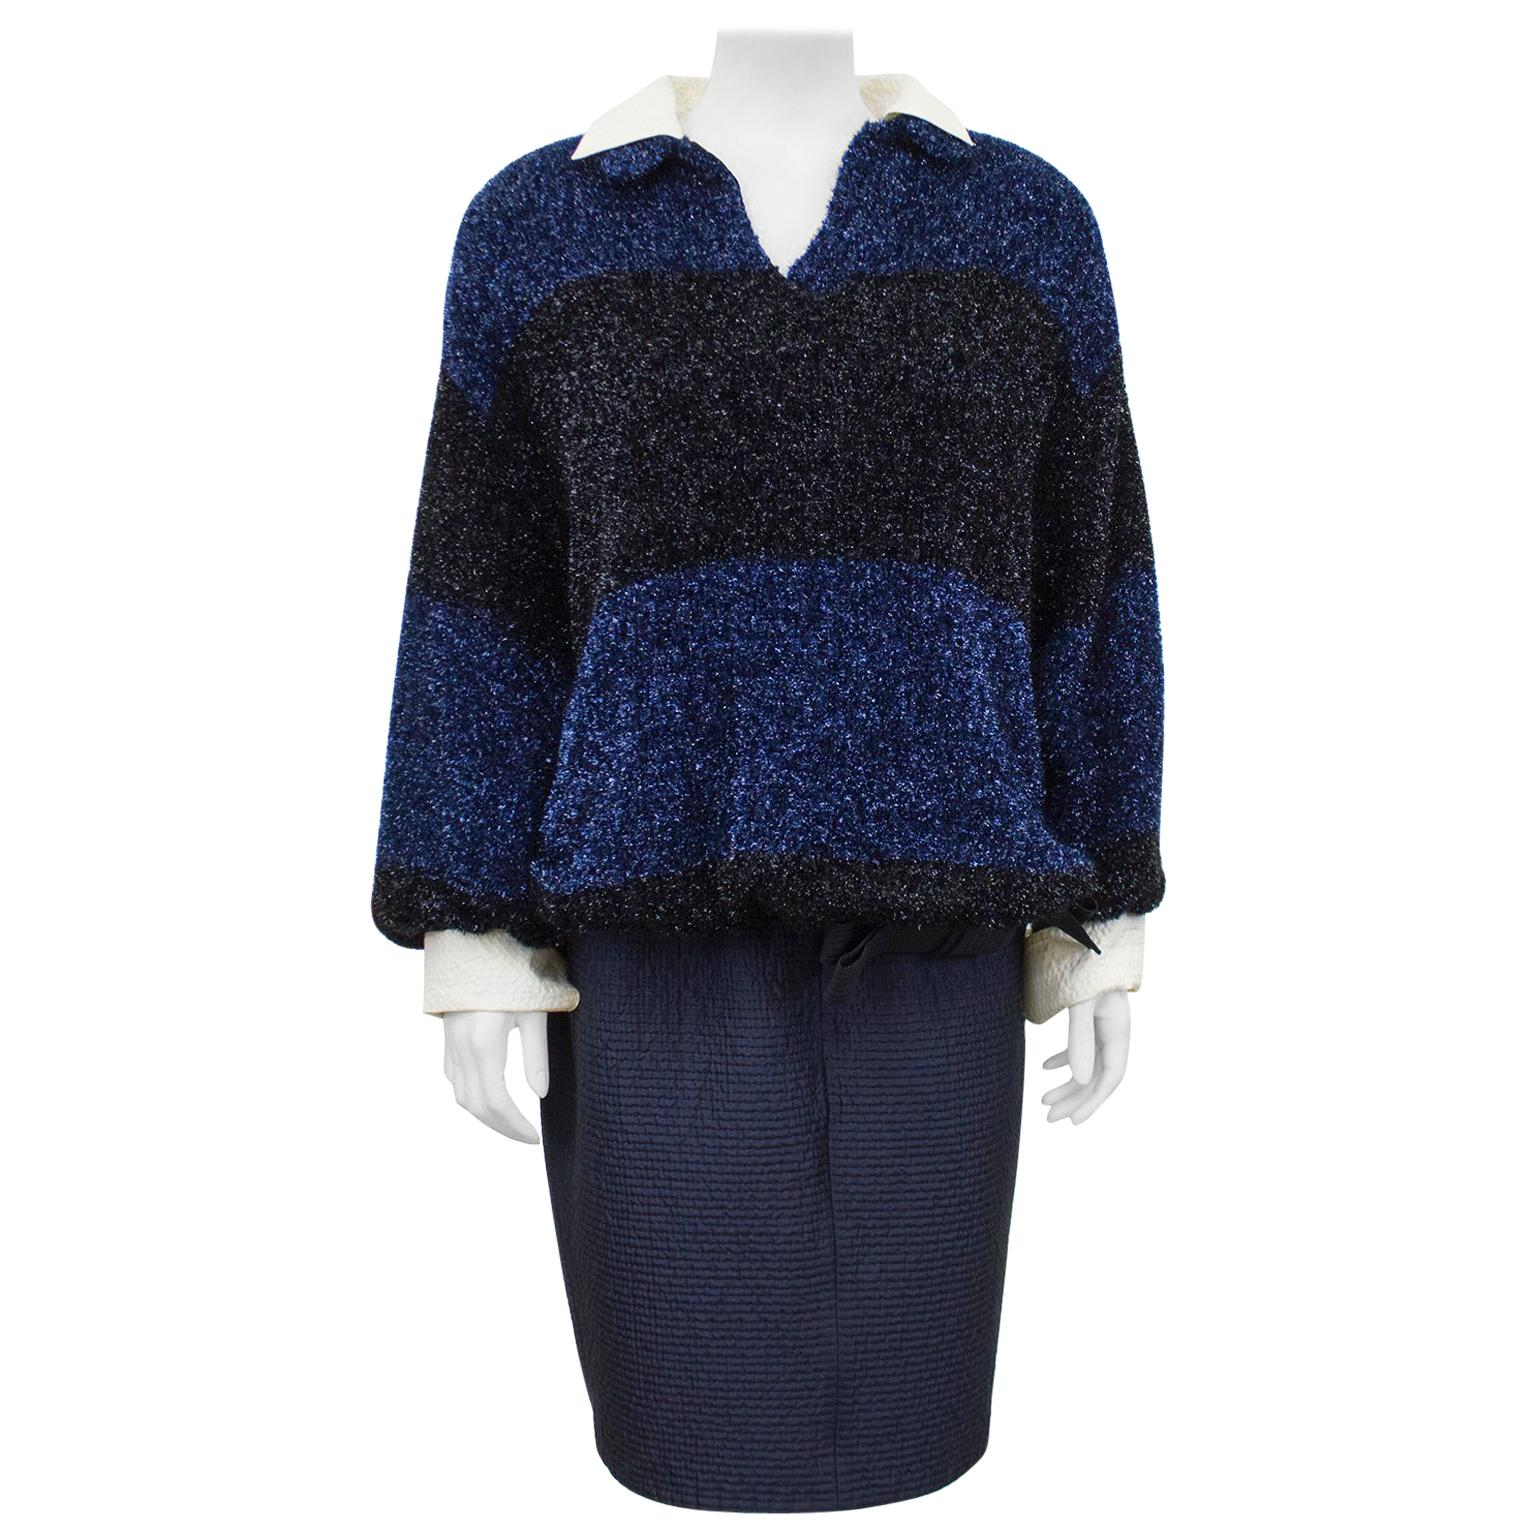 1980s Ferre Navy Fuzzy Lurex Top and Skirt